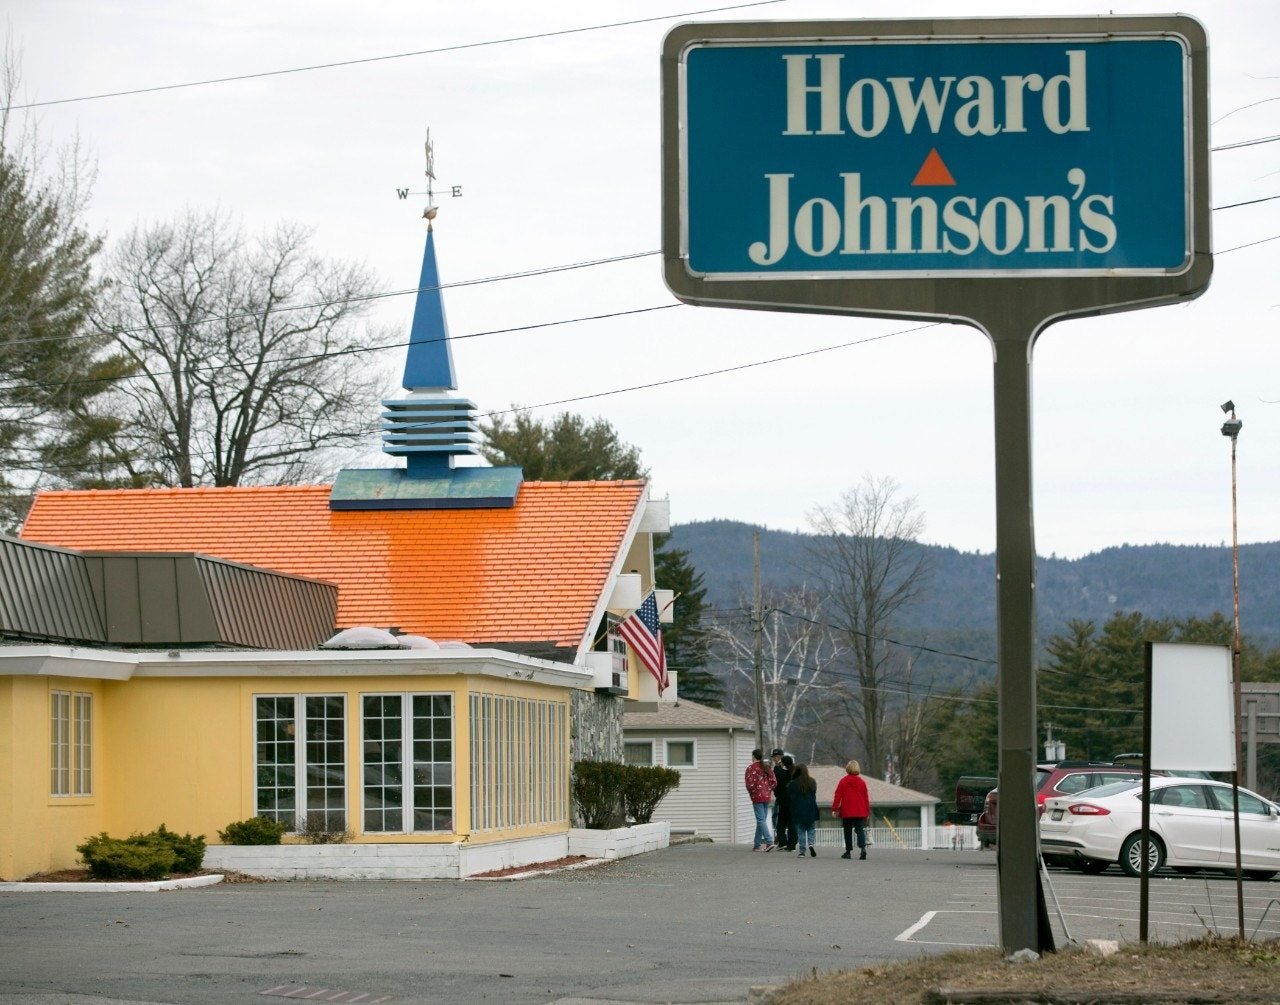 5 restaurant chains that don't exist anymore